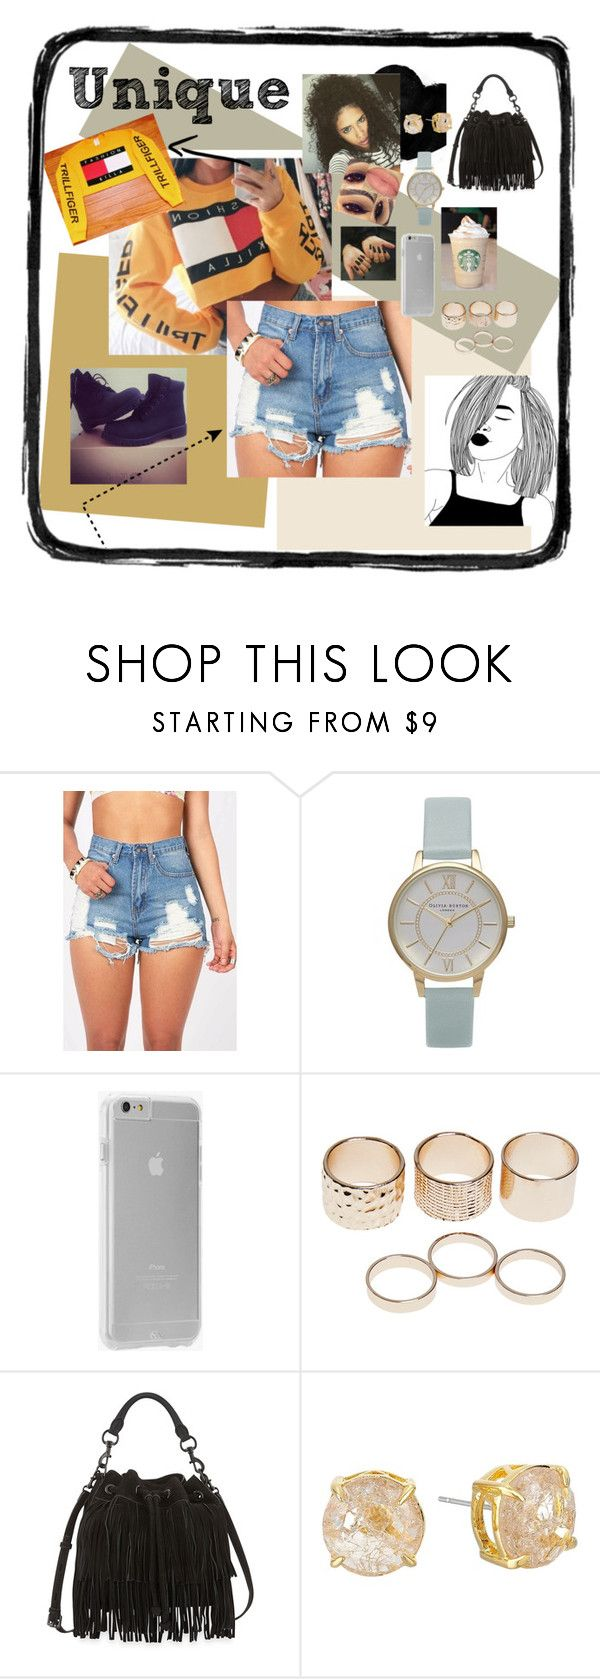 """UniKay..."" by chelle245 ❤ liked on Polyvore featuring Olivia Burton, Bullet, Case-Mate, Wet Seal, Rebecca Minkoff and Vince Camuto"